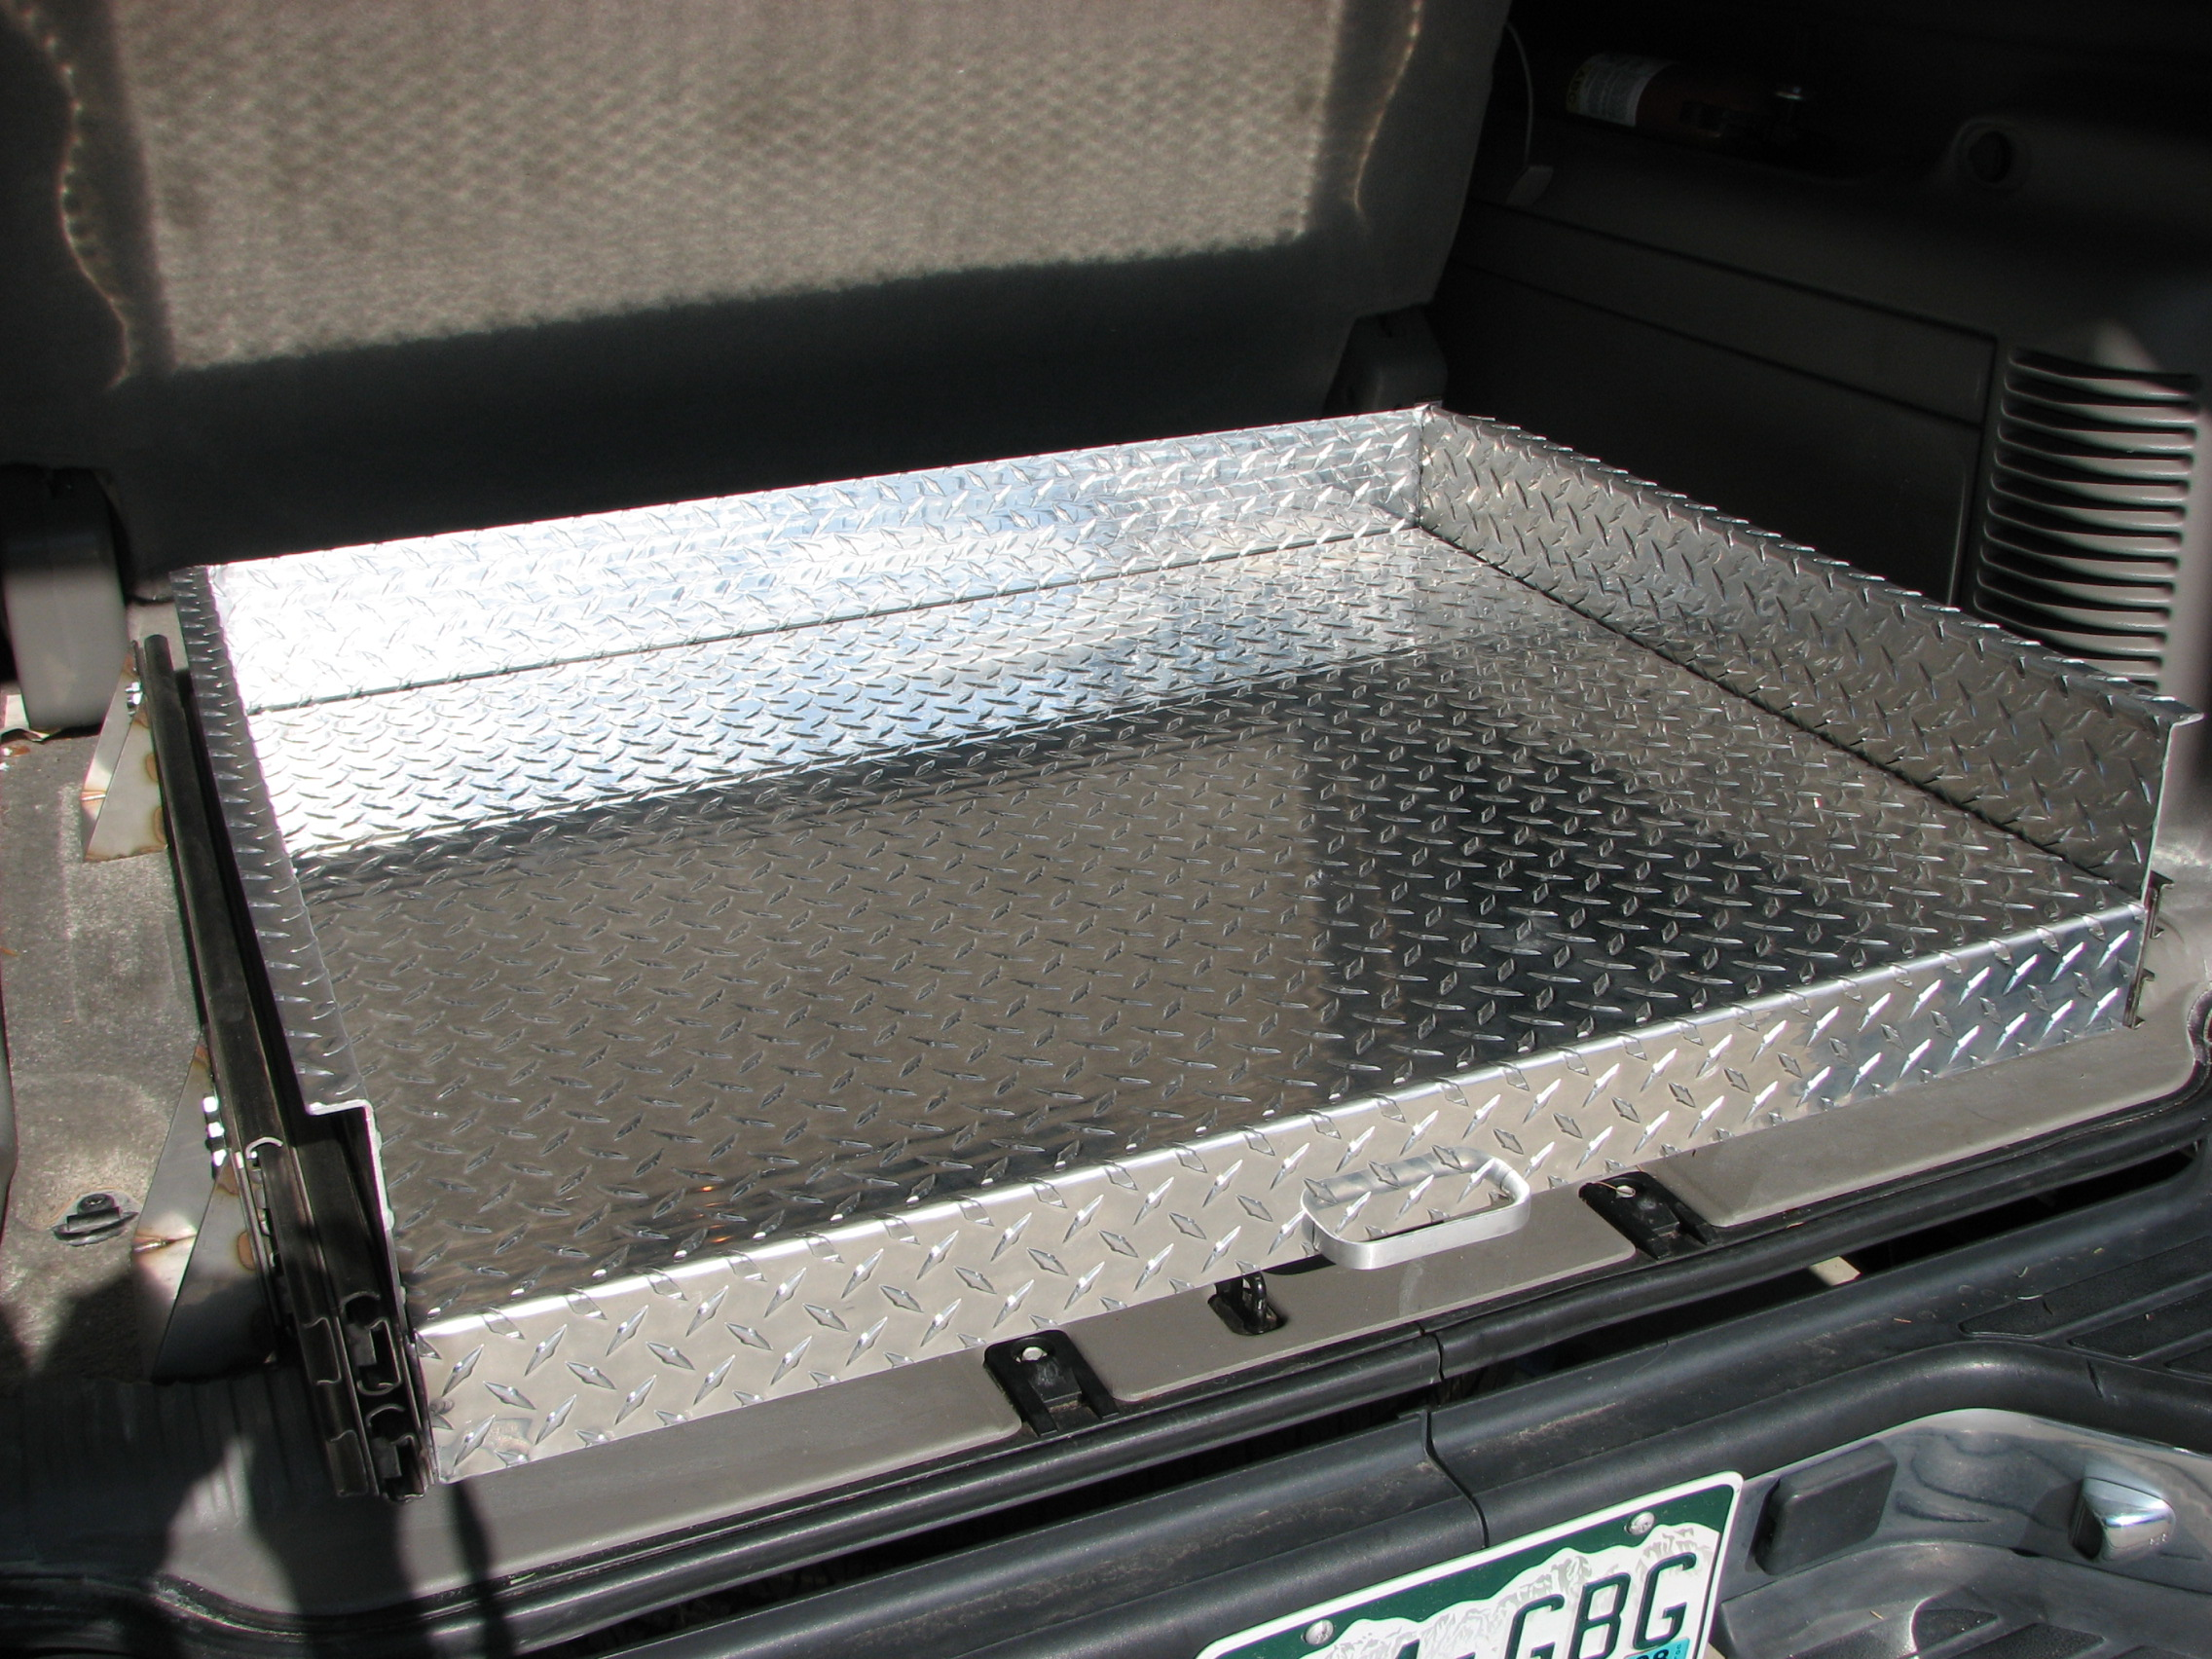 Diy truck bed slide out bing images - Homemade truck bed drawers ...